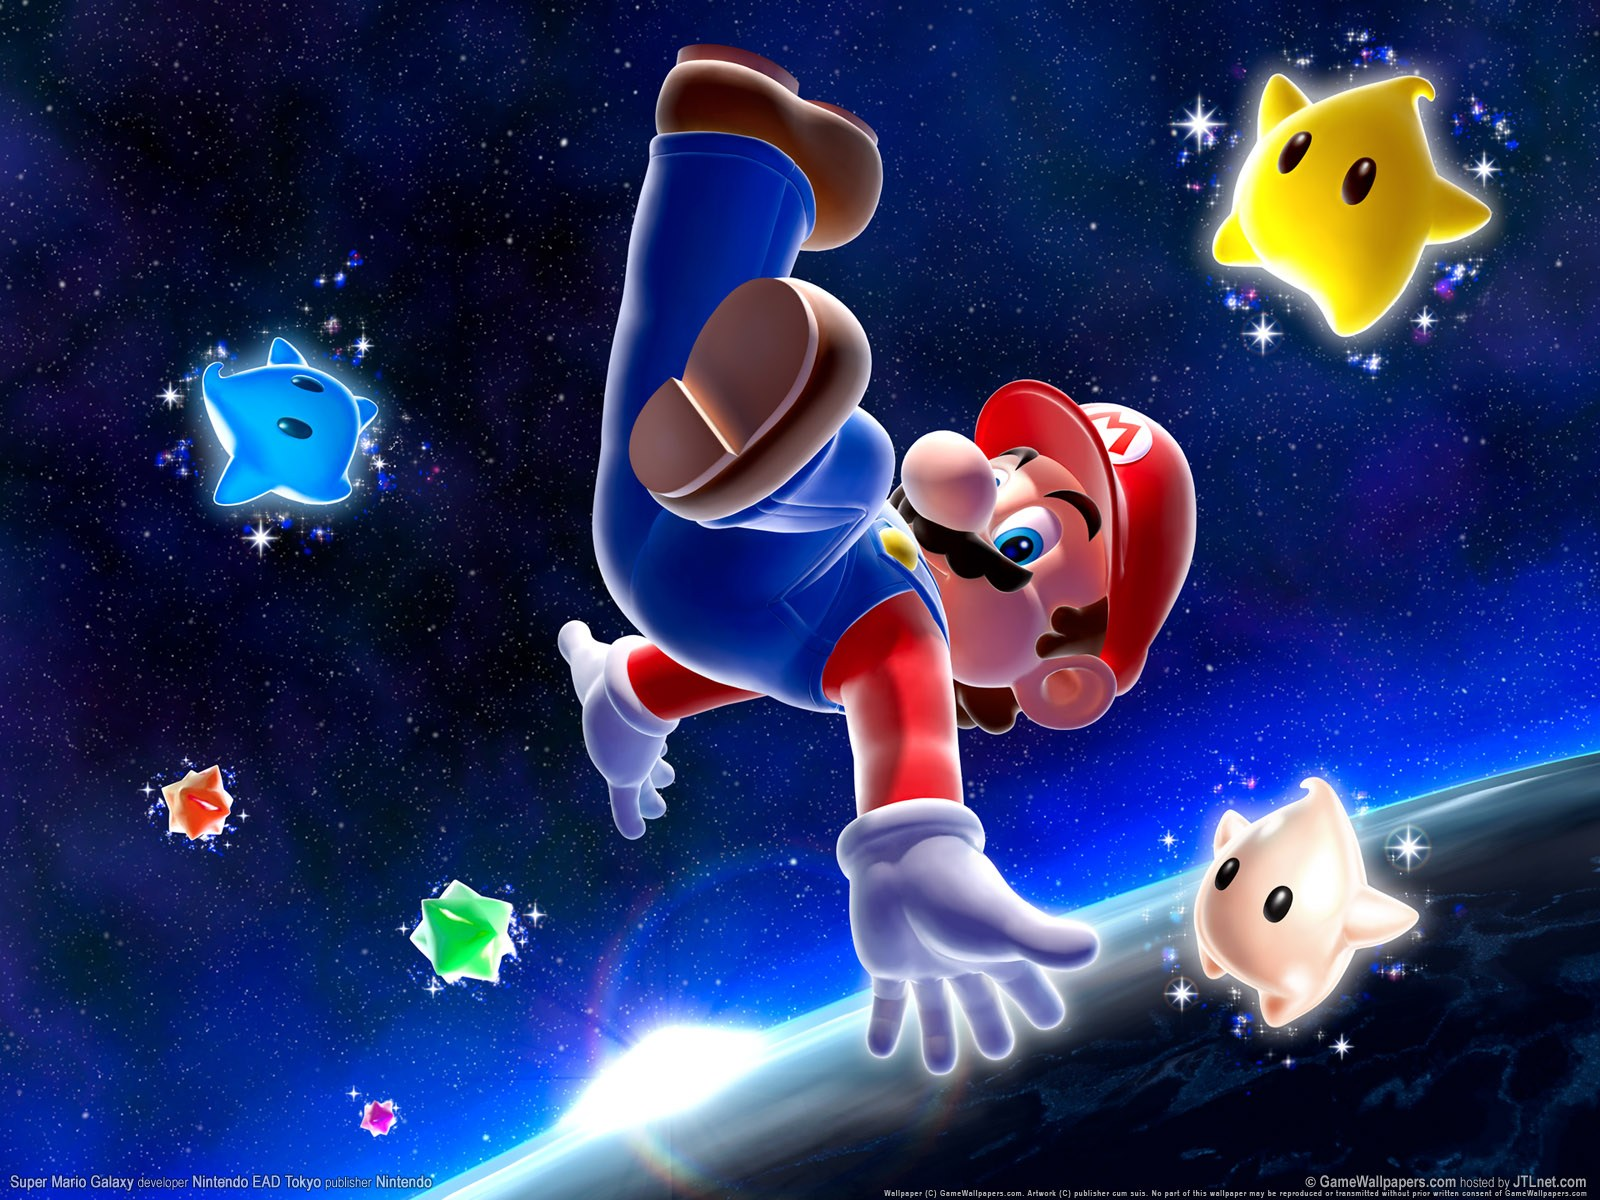 Opinions about Mario Forever Galaxy